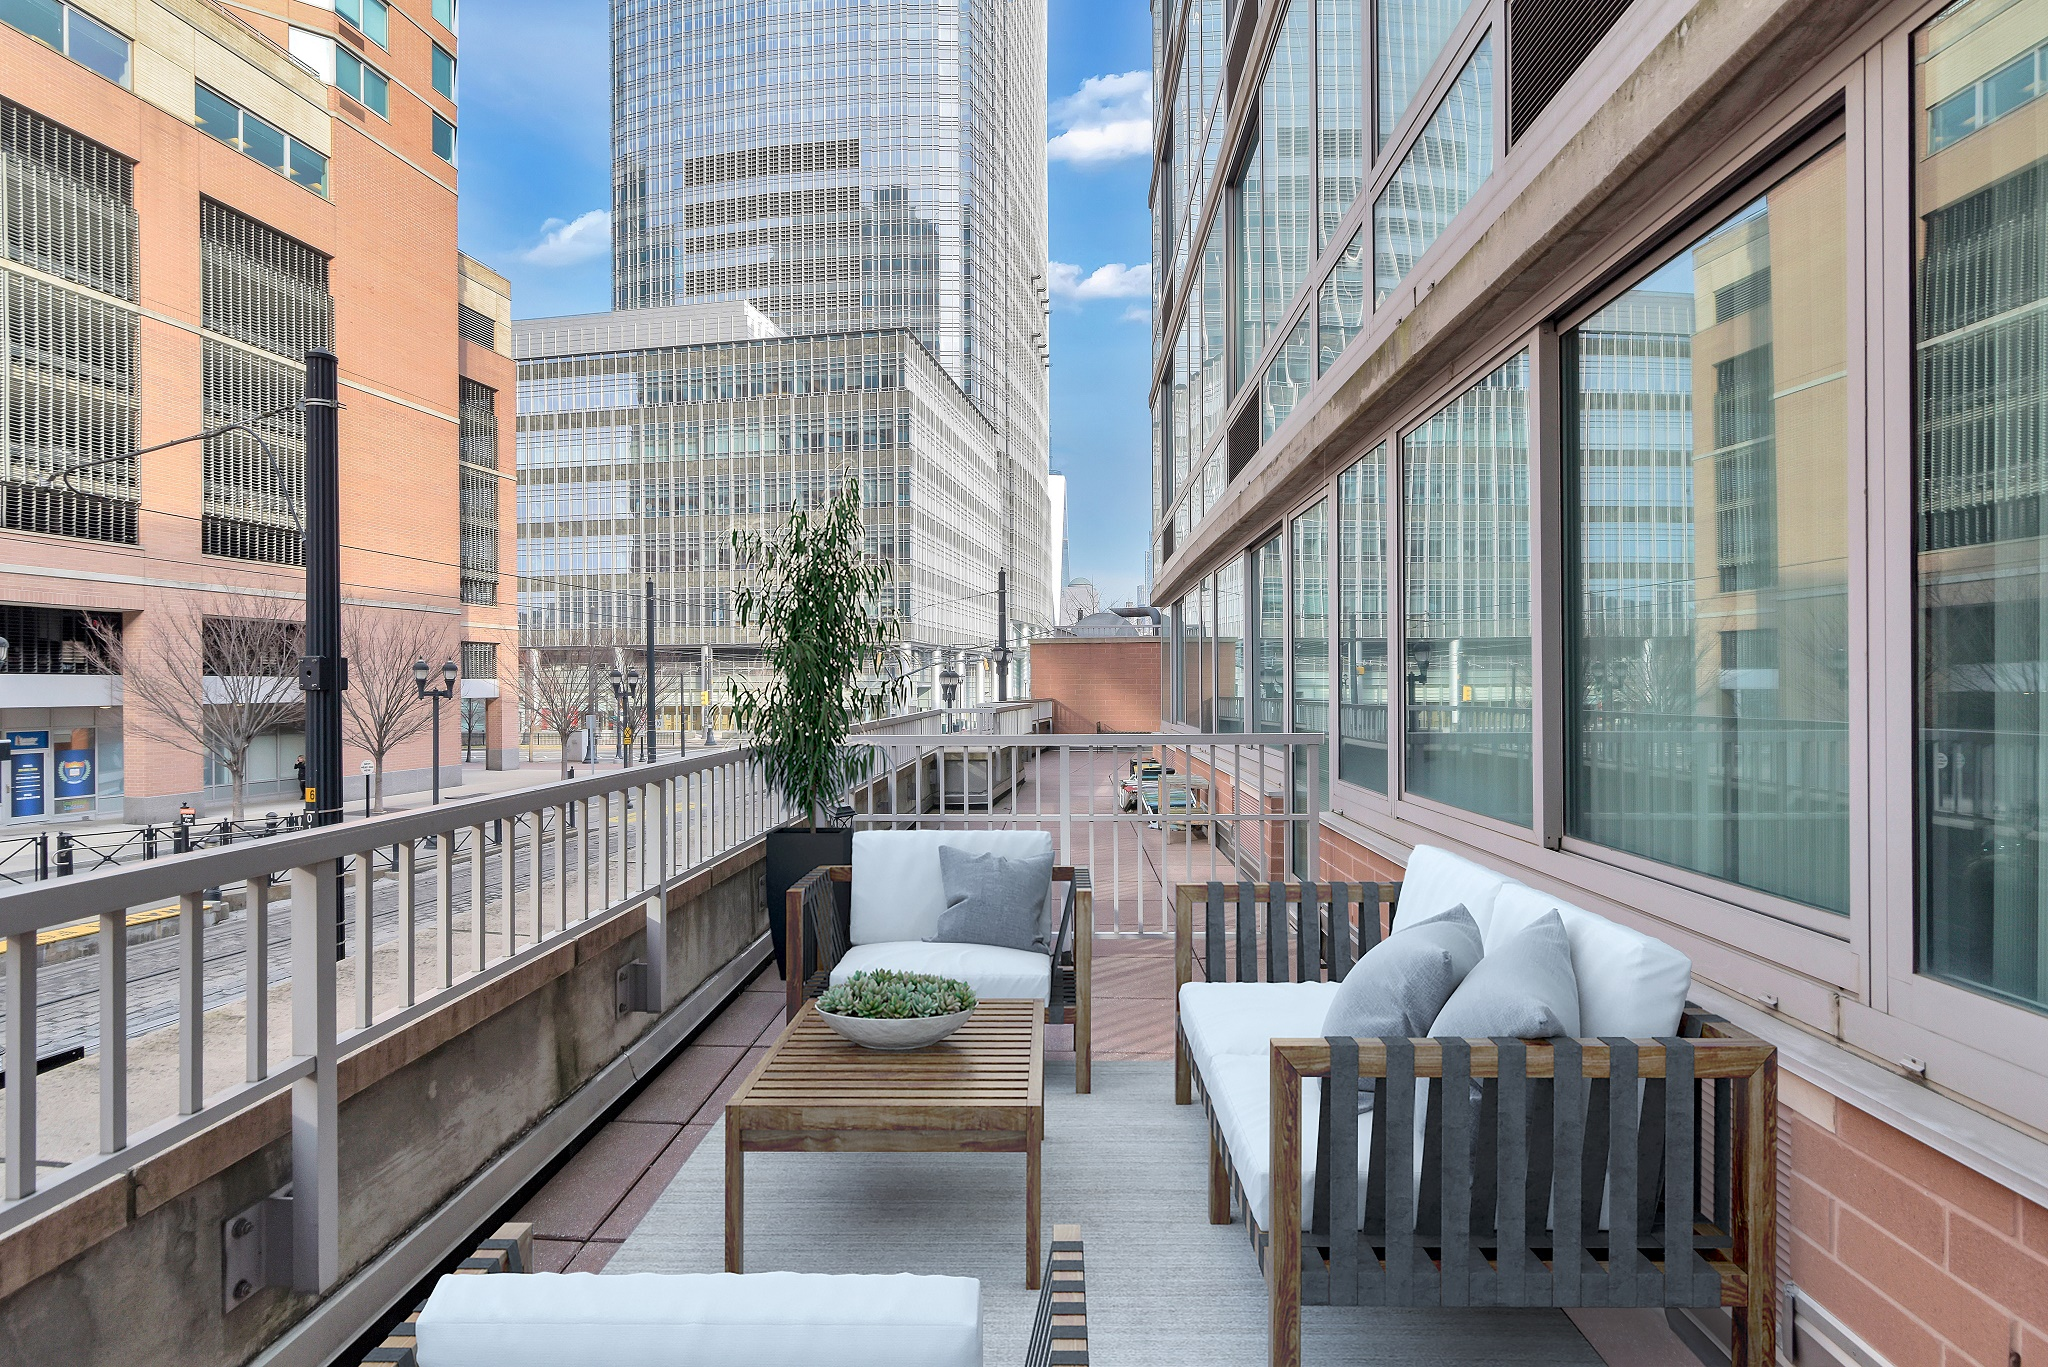 JUST REDUCED TO SELL- 25 HUDSON ST. 214. Jersey City, NJ 07302 $649,900